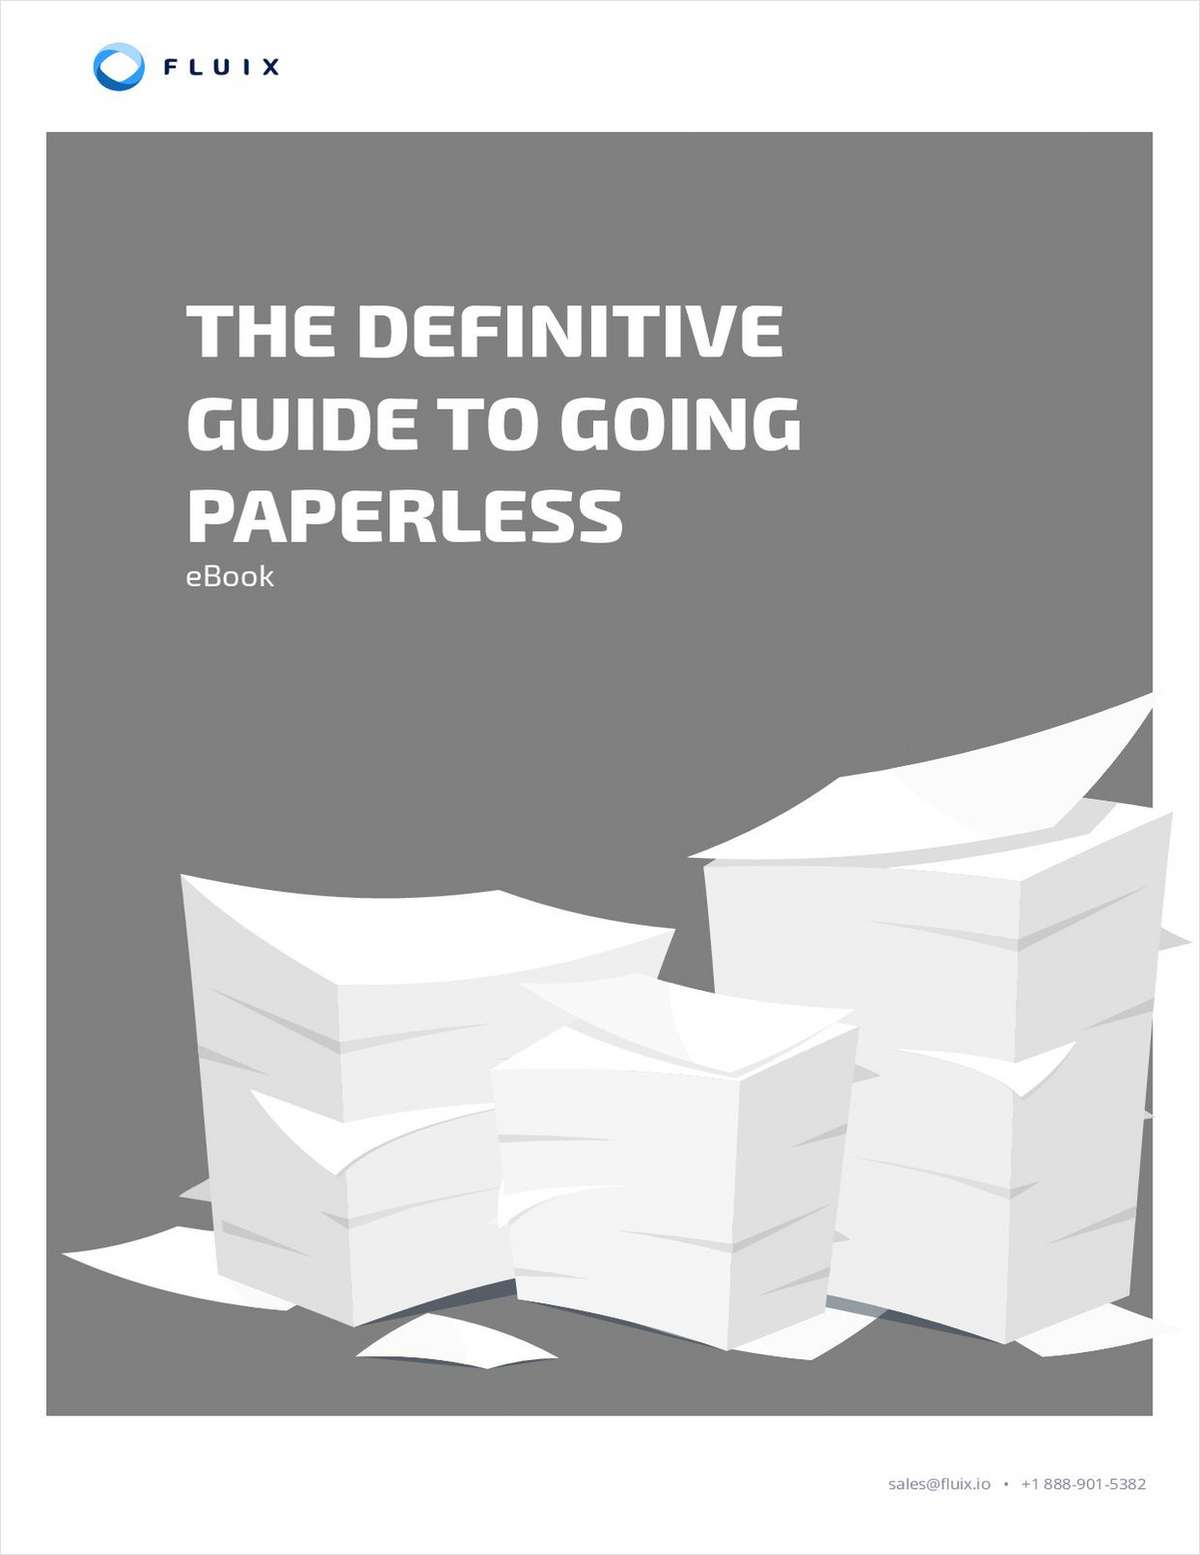 The Definitive Guide to Going Paperless